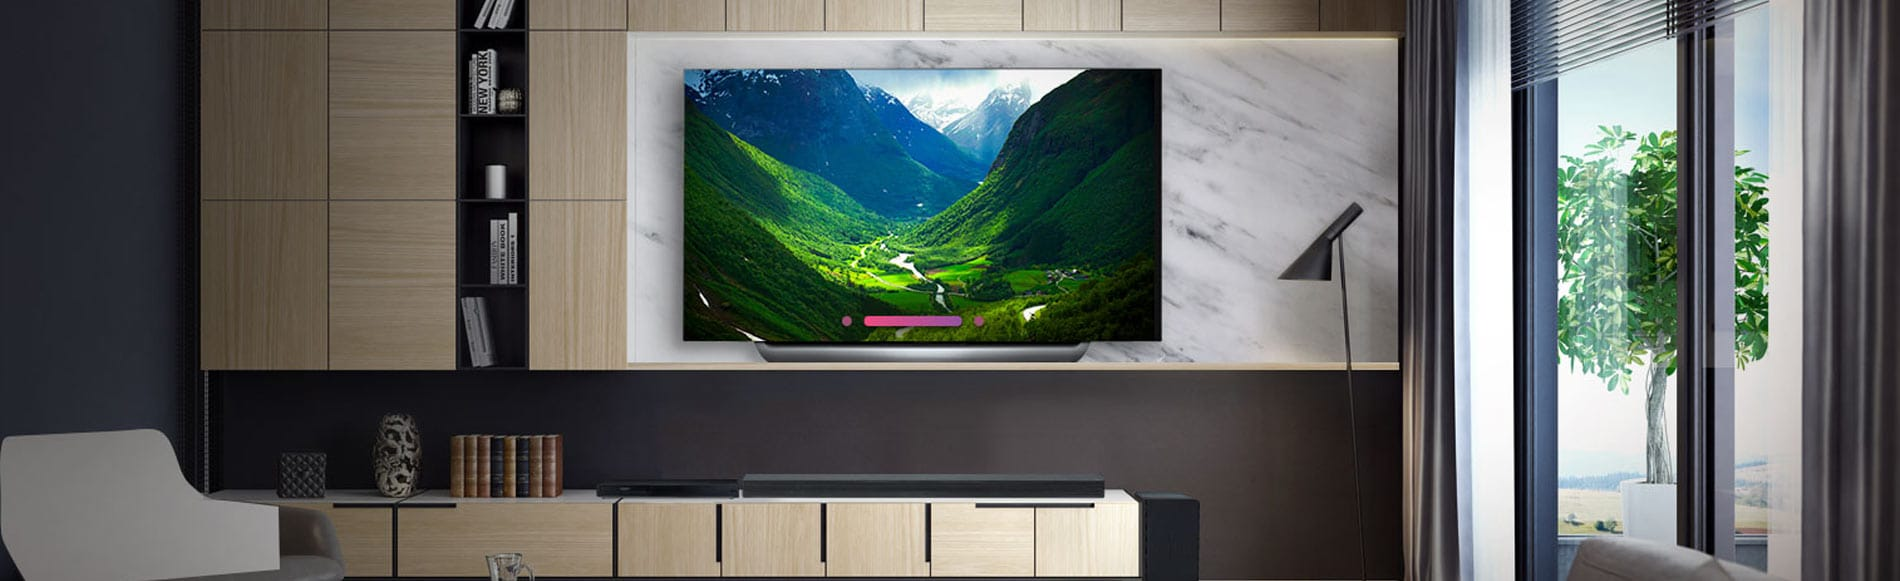 LG Electronics Products at Deweys TV & Home Appliances in San Clemente CA 92672